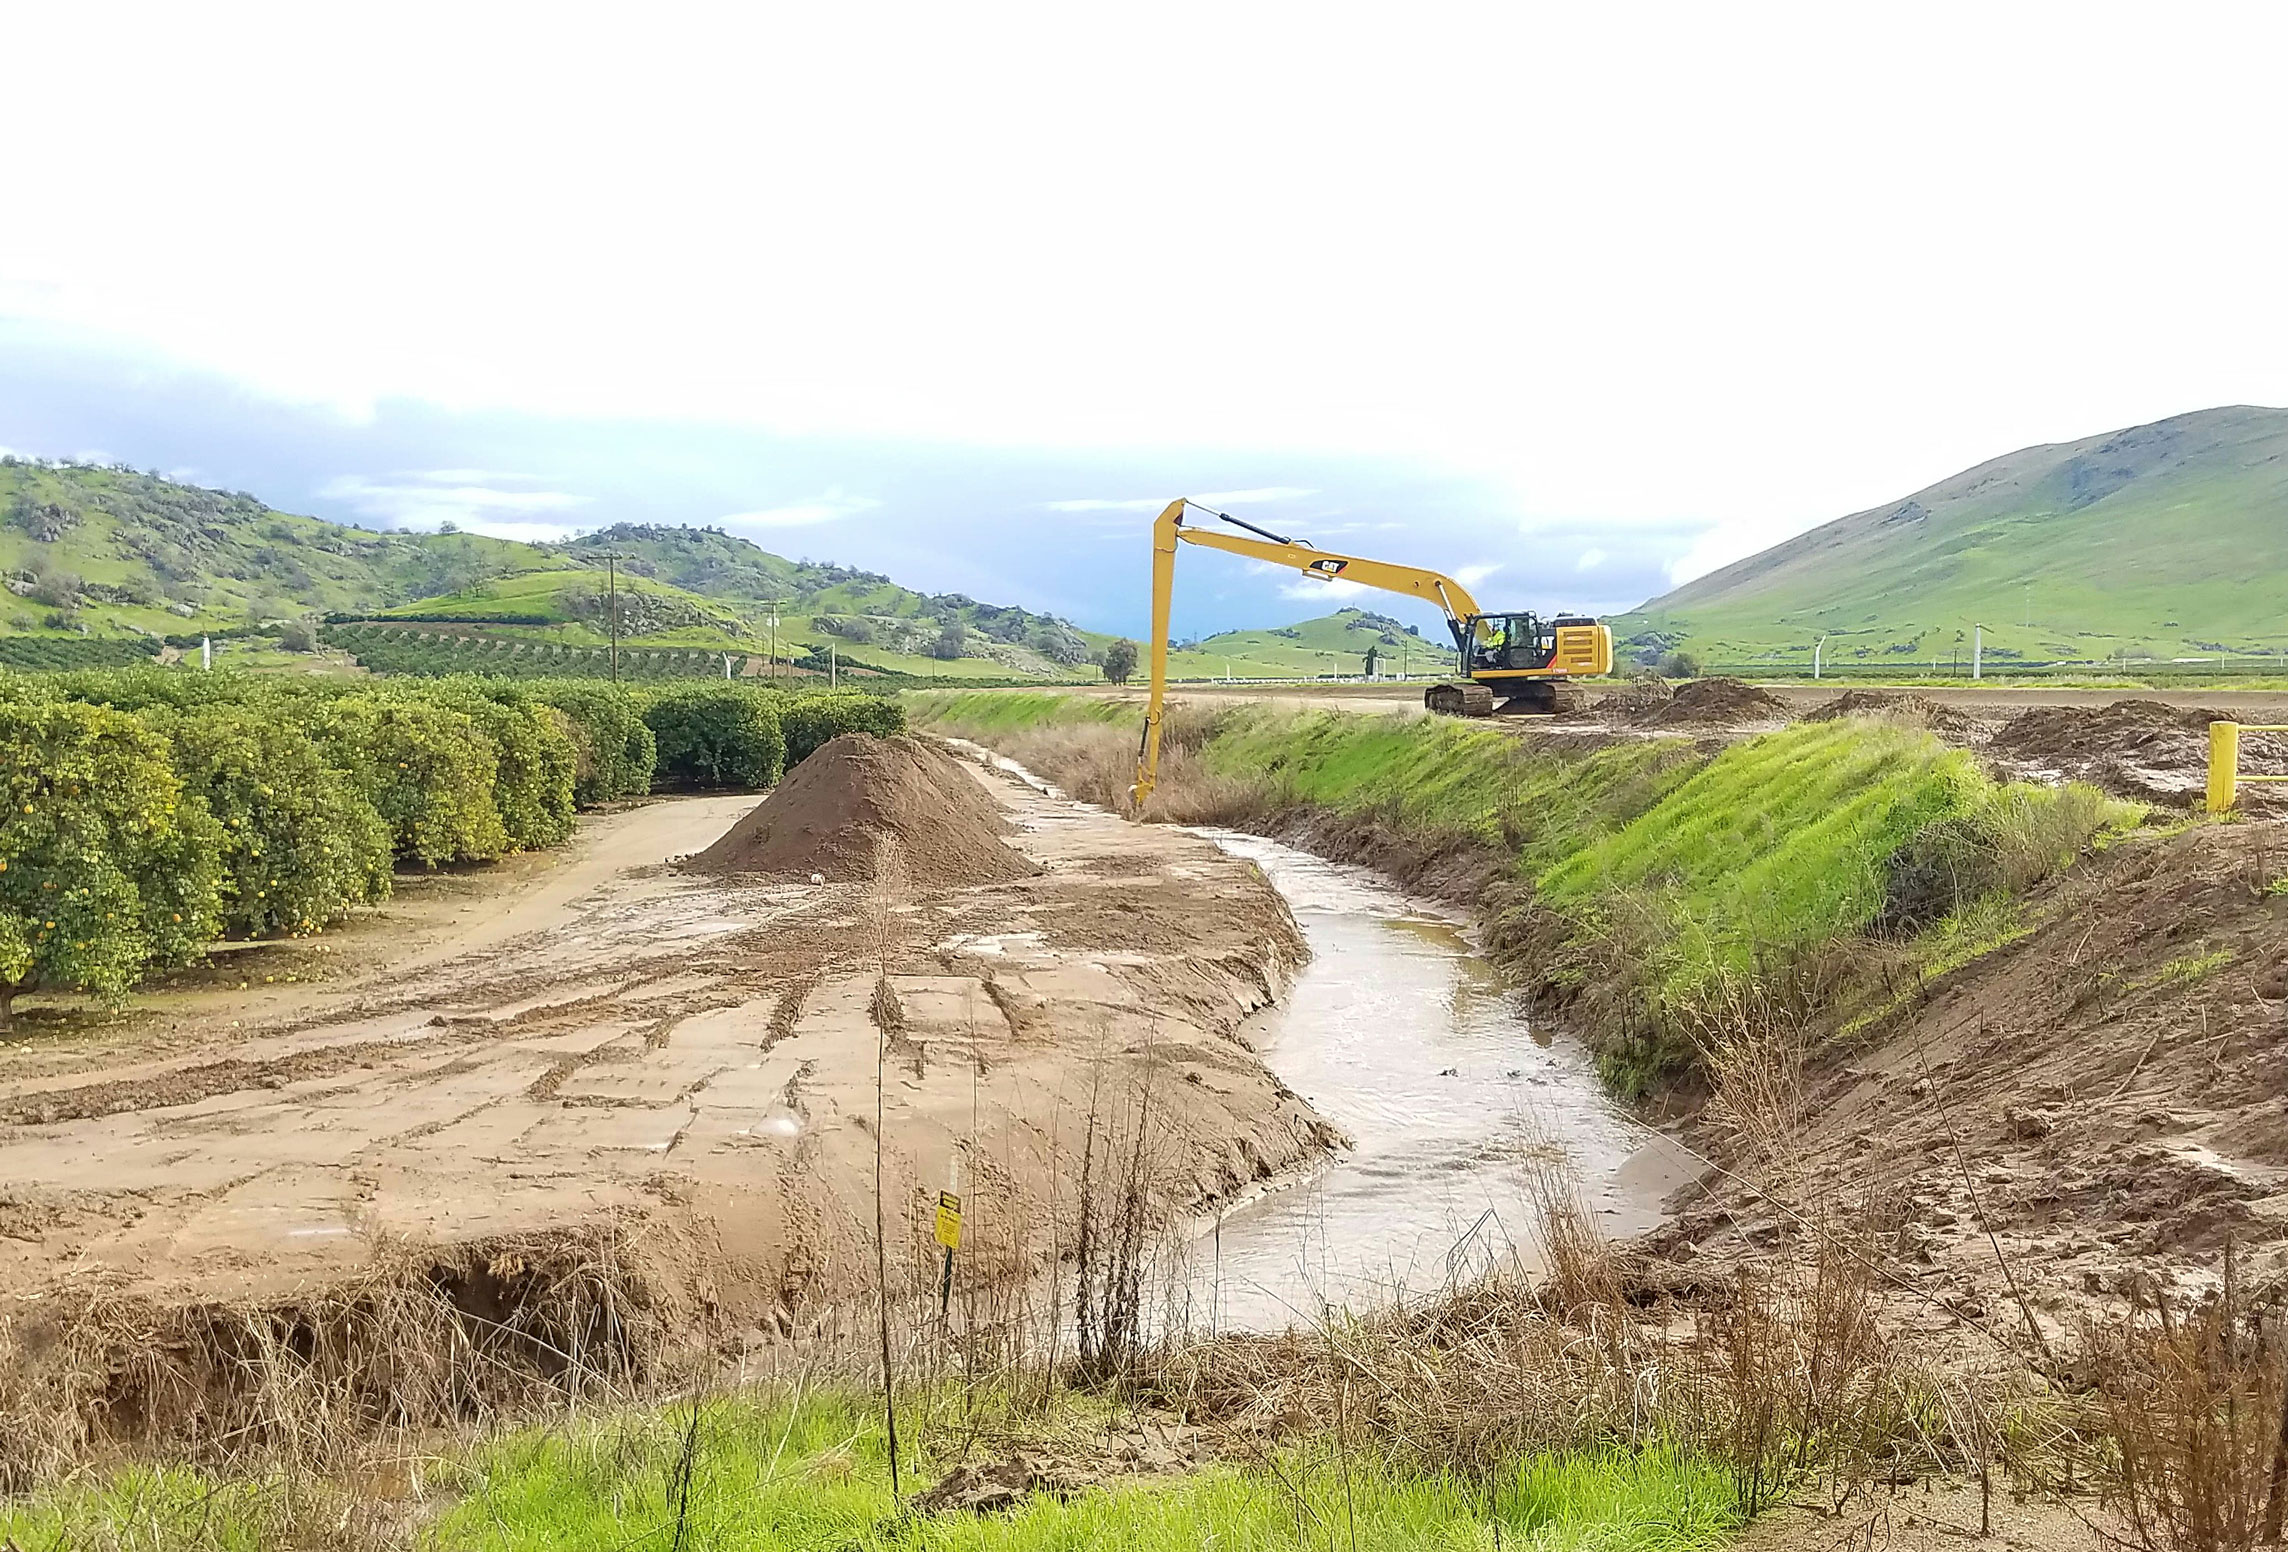 Drainage ditch being cleared of debris in the Orange Cove Section of the Friant Kern Canal